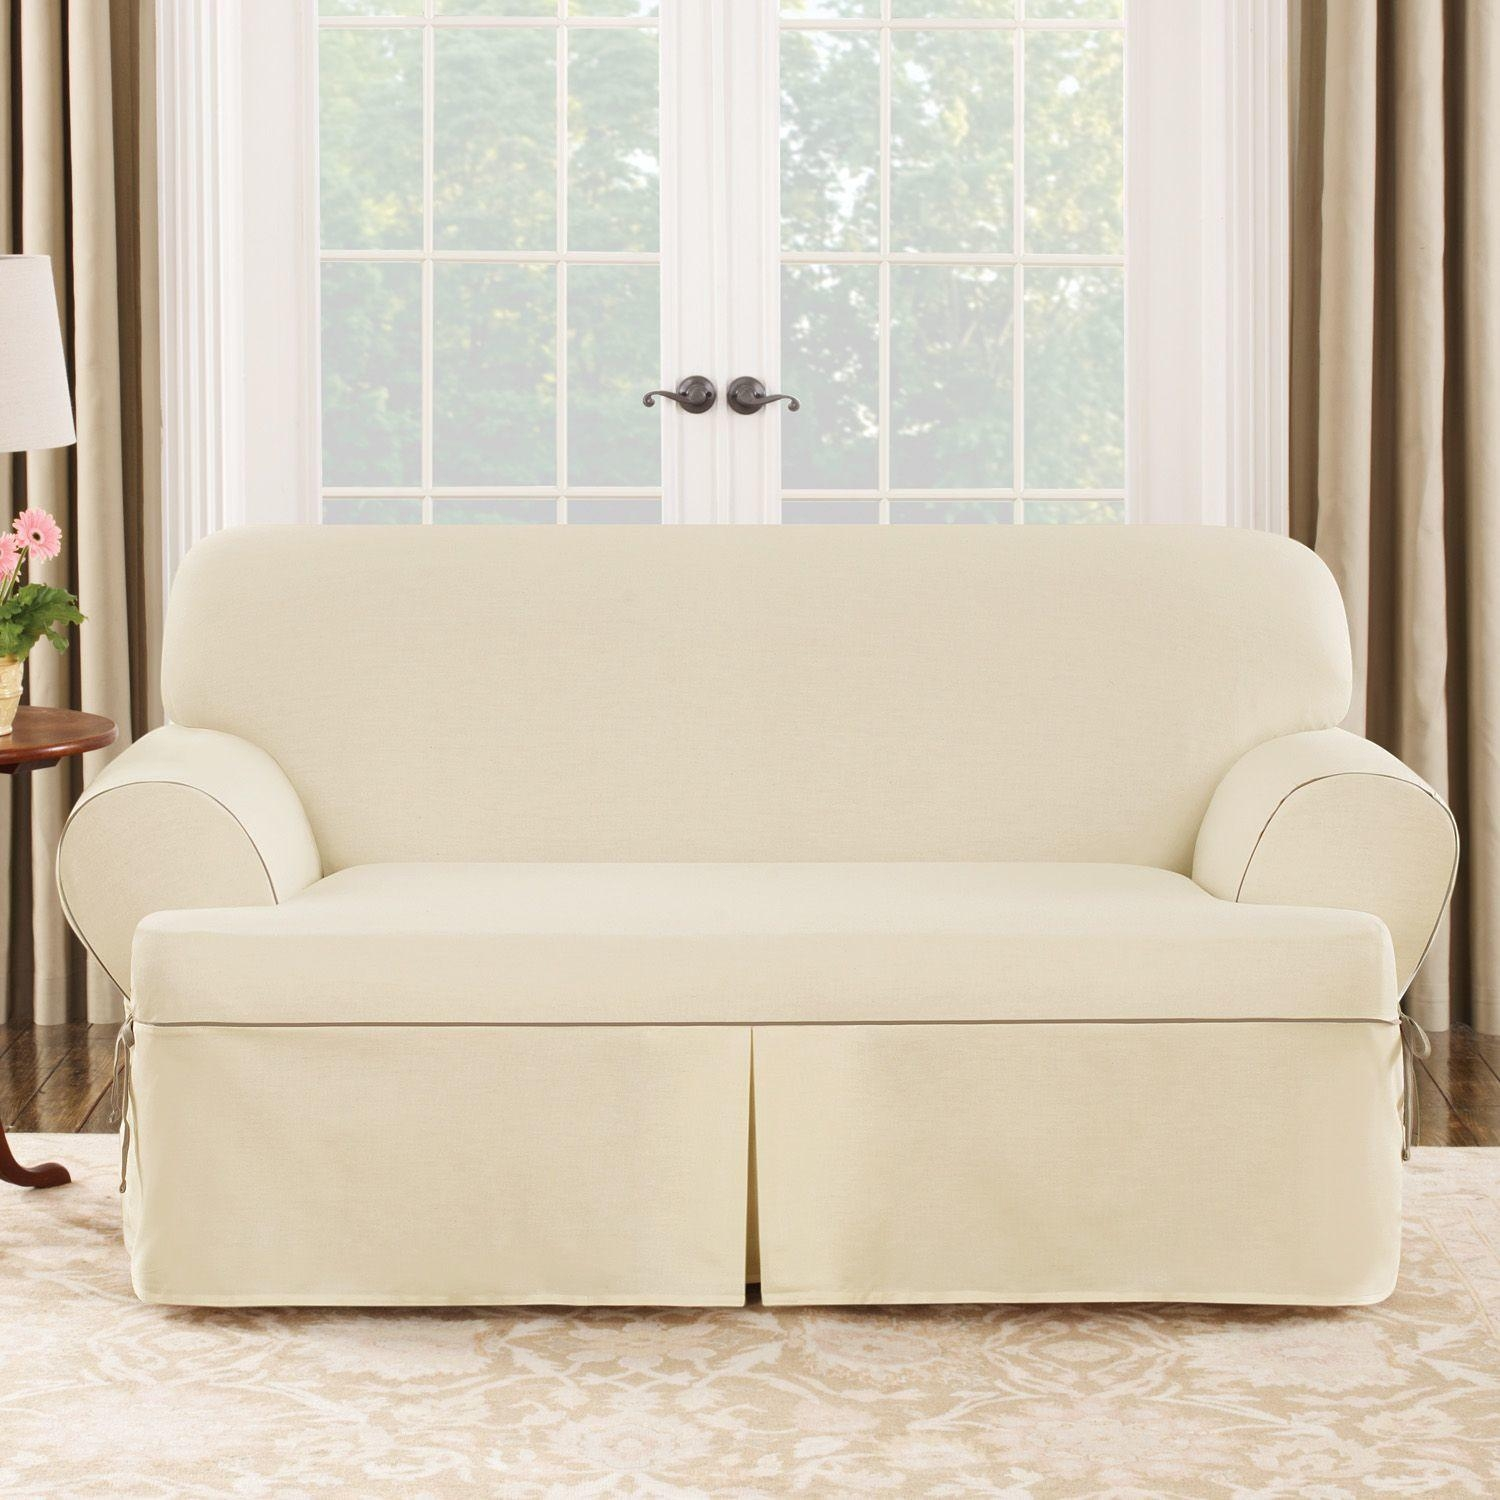 Furniture & Sofa: Stunning Sure Fit Sofa Covers Design For With Regard To Loveseat Slipcovers T Cushion (Image 7 of 20)